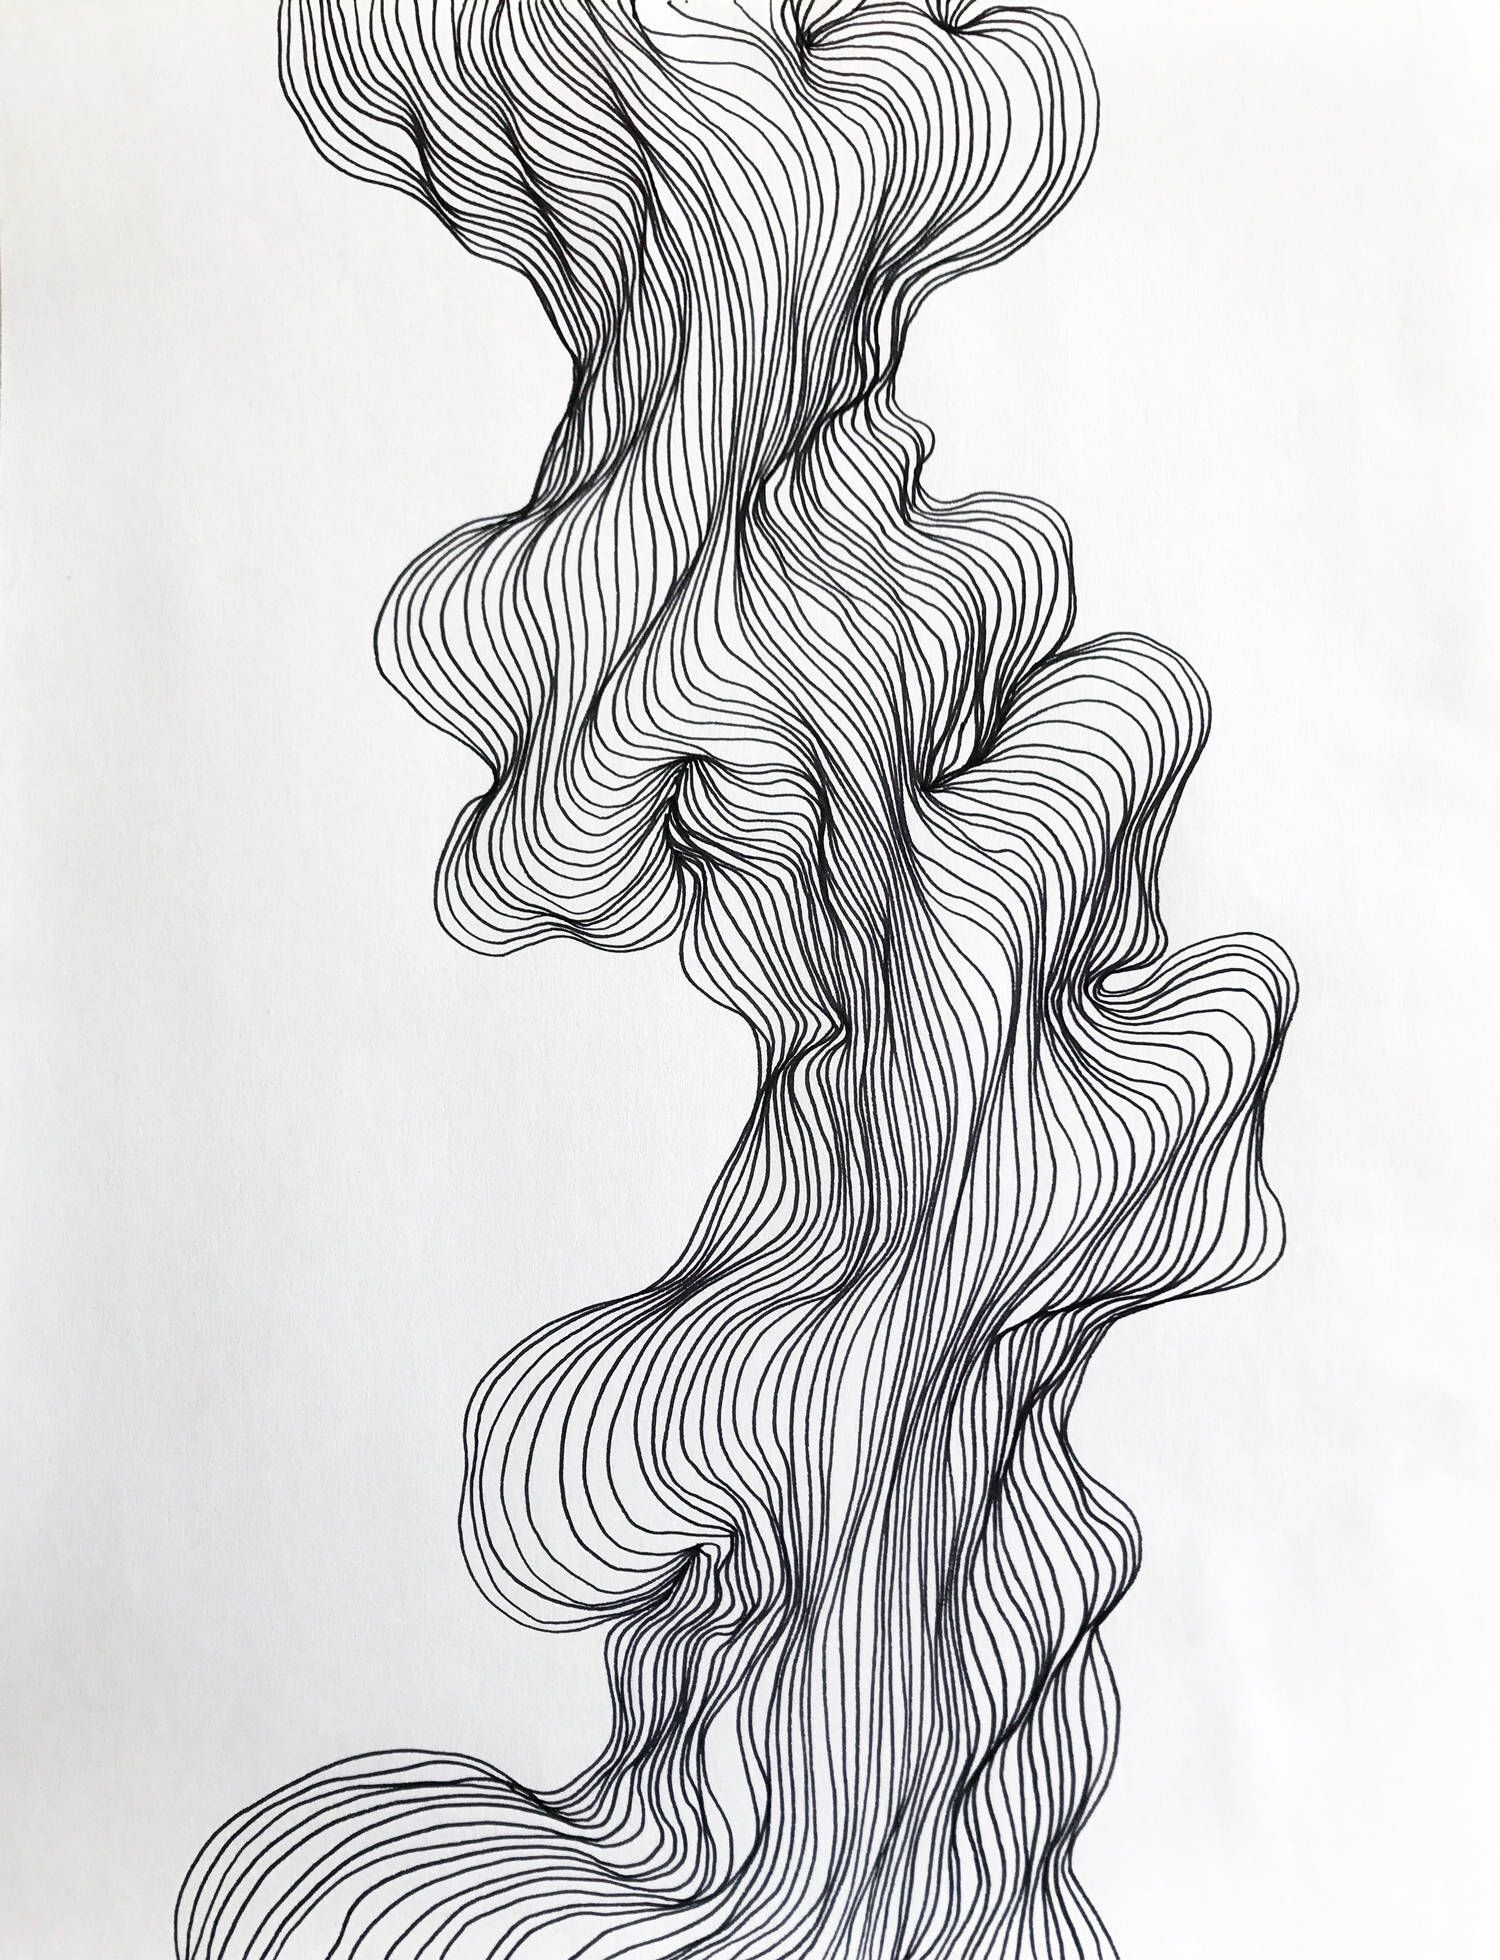 Line Art Abstract : Abstract line art black and white modern drawing organic